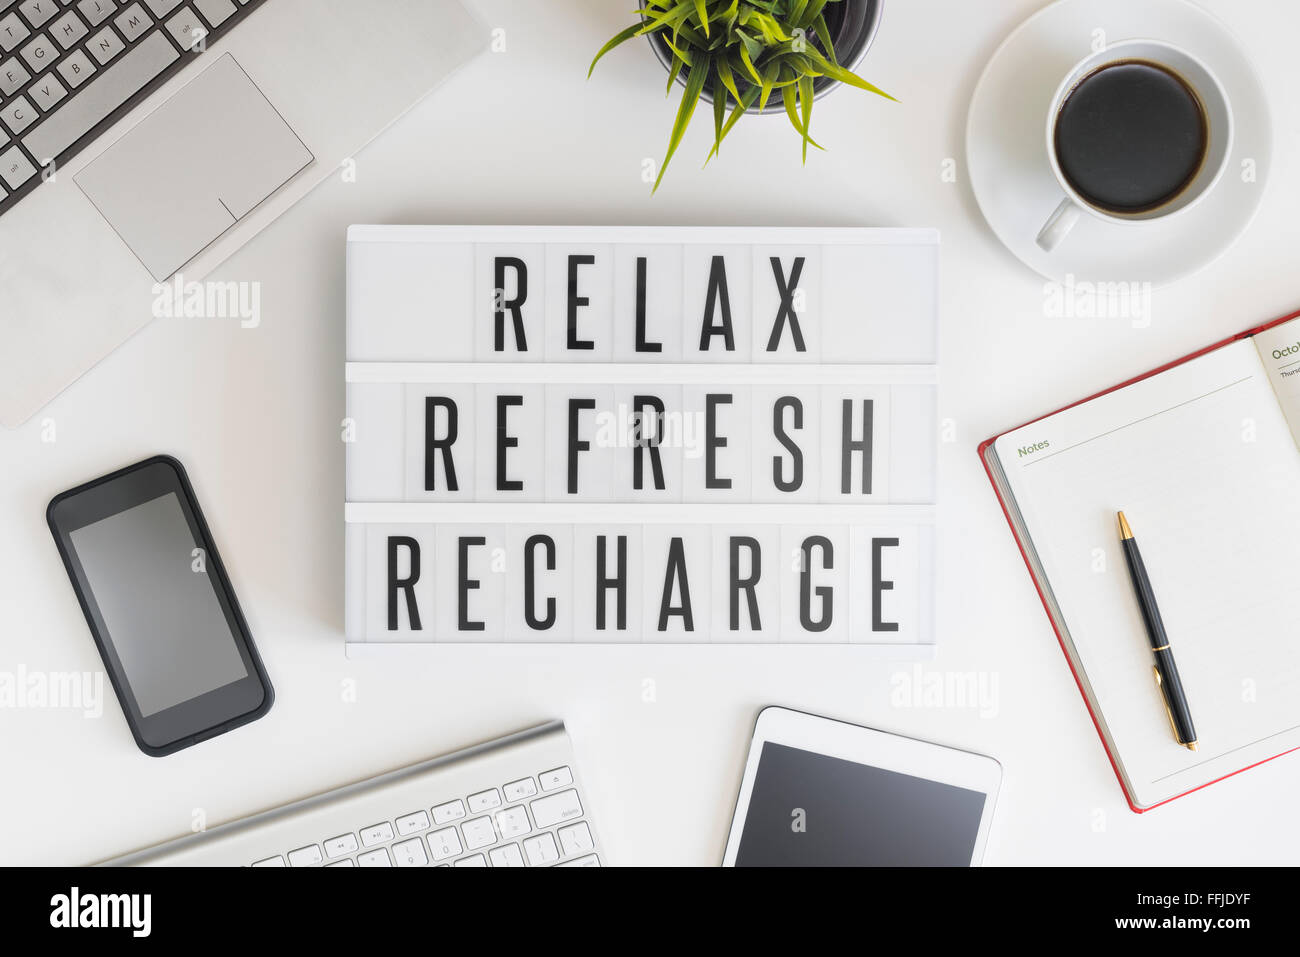 Relax, refresh and recharge in office - Stock Image